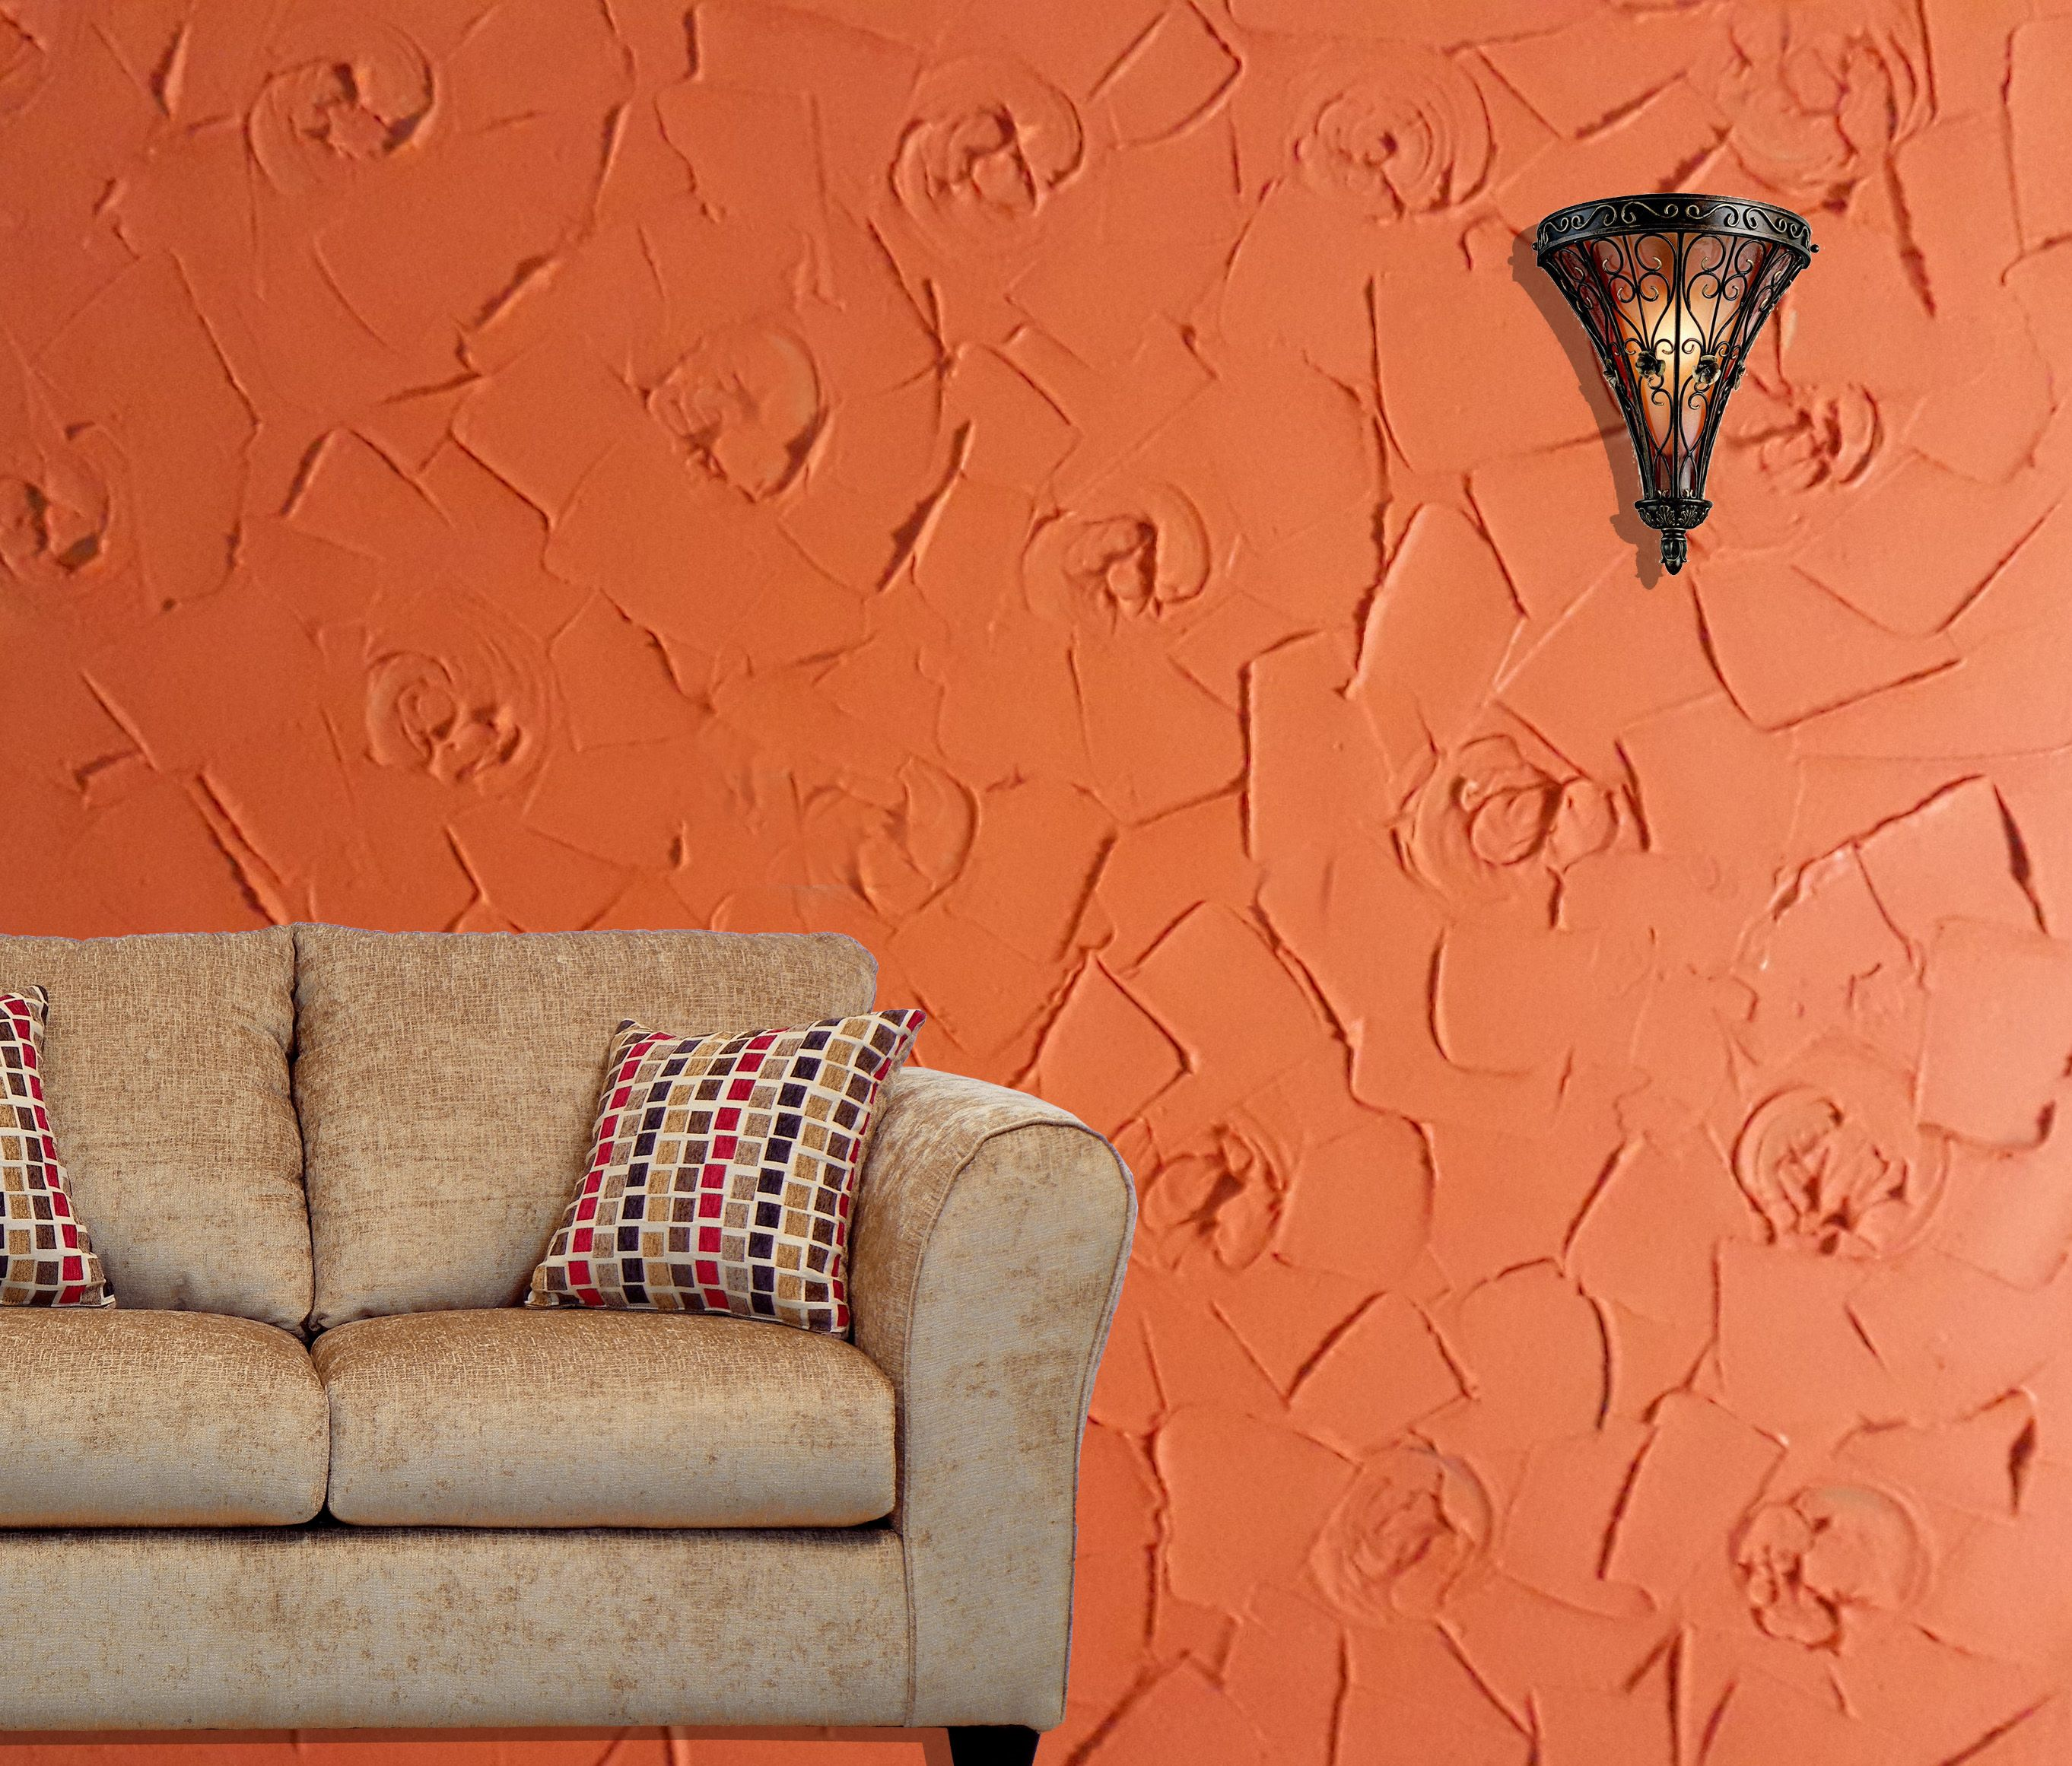 Decorative Texture On Dry Wall Wall Texture Design Wall Painting Living Room Wall Design